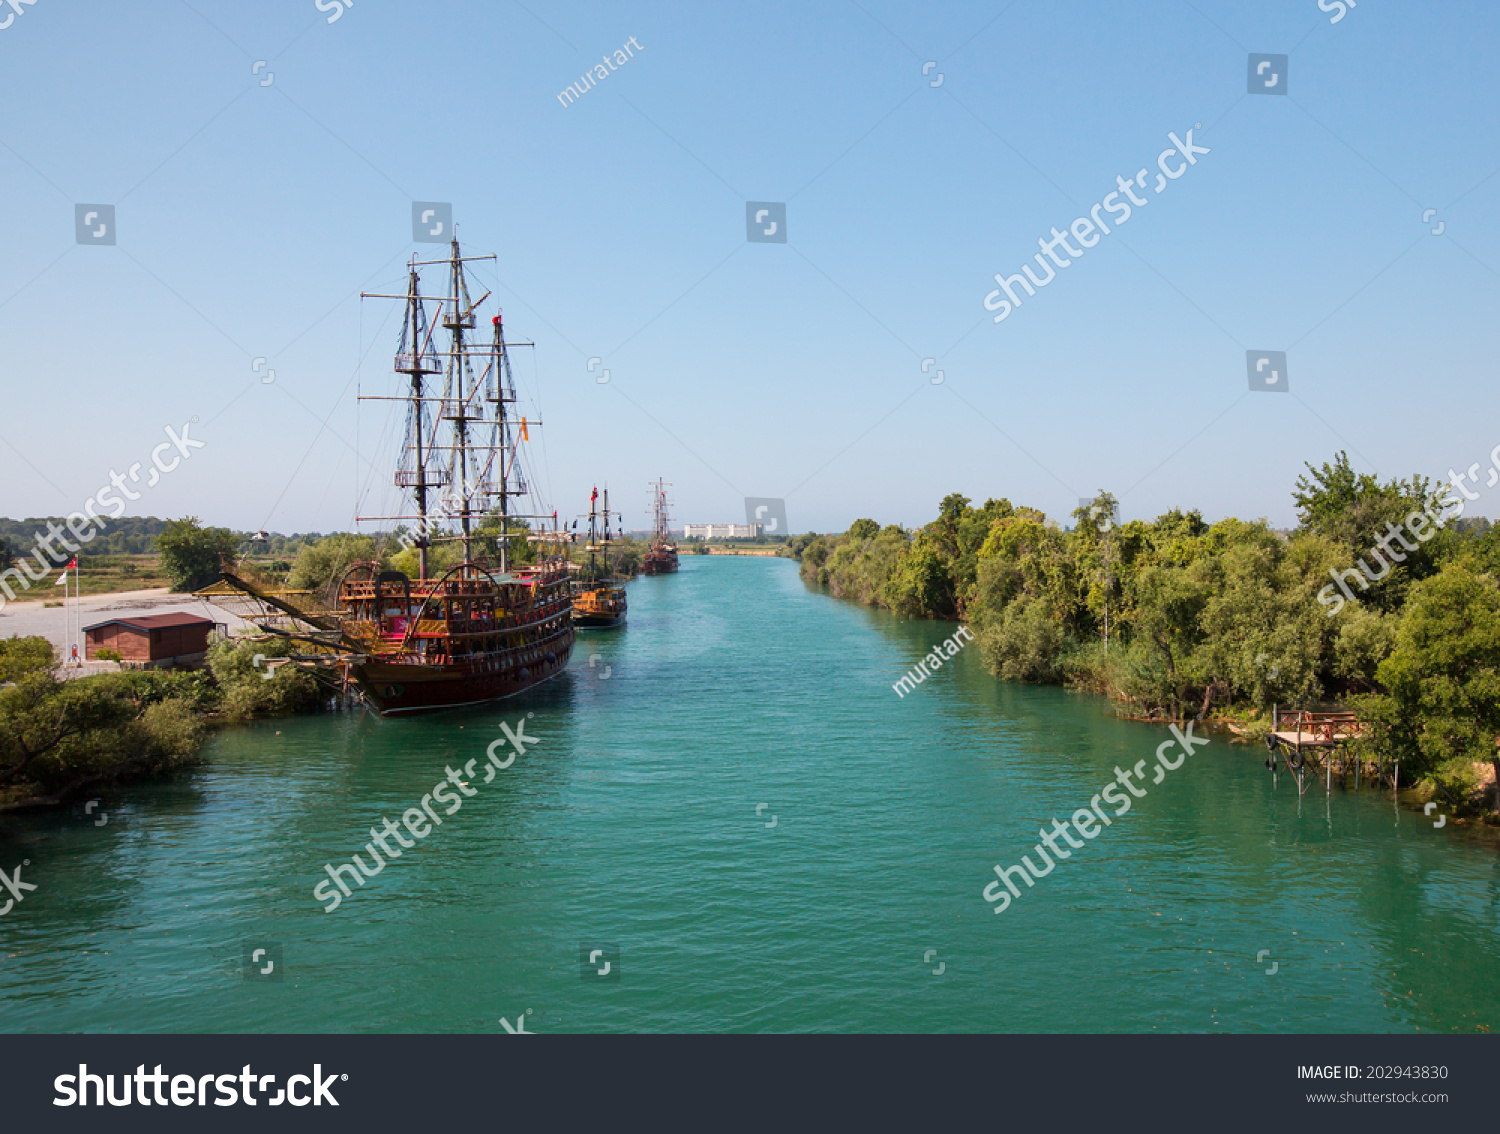 Manavgat Turkey  city photo : MANAVGAT TURKEY JULY 01: Pirate ship on the water of Manavgat river ...